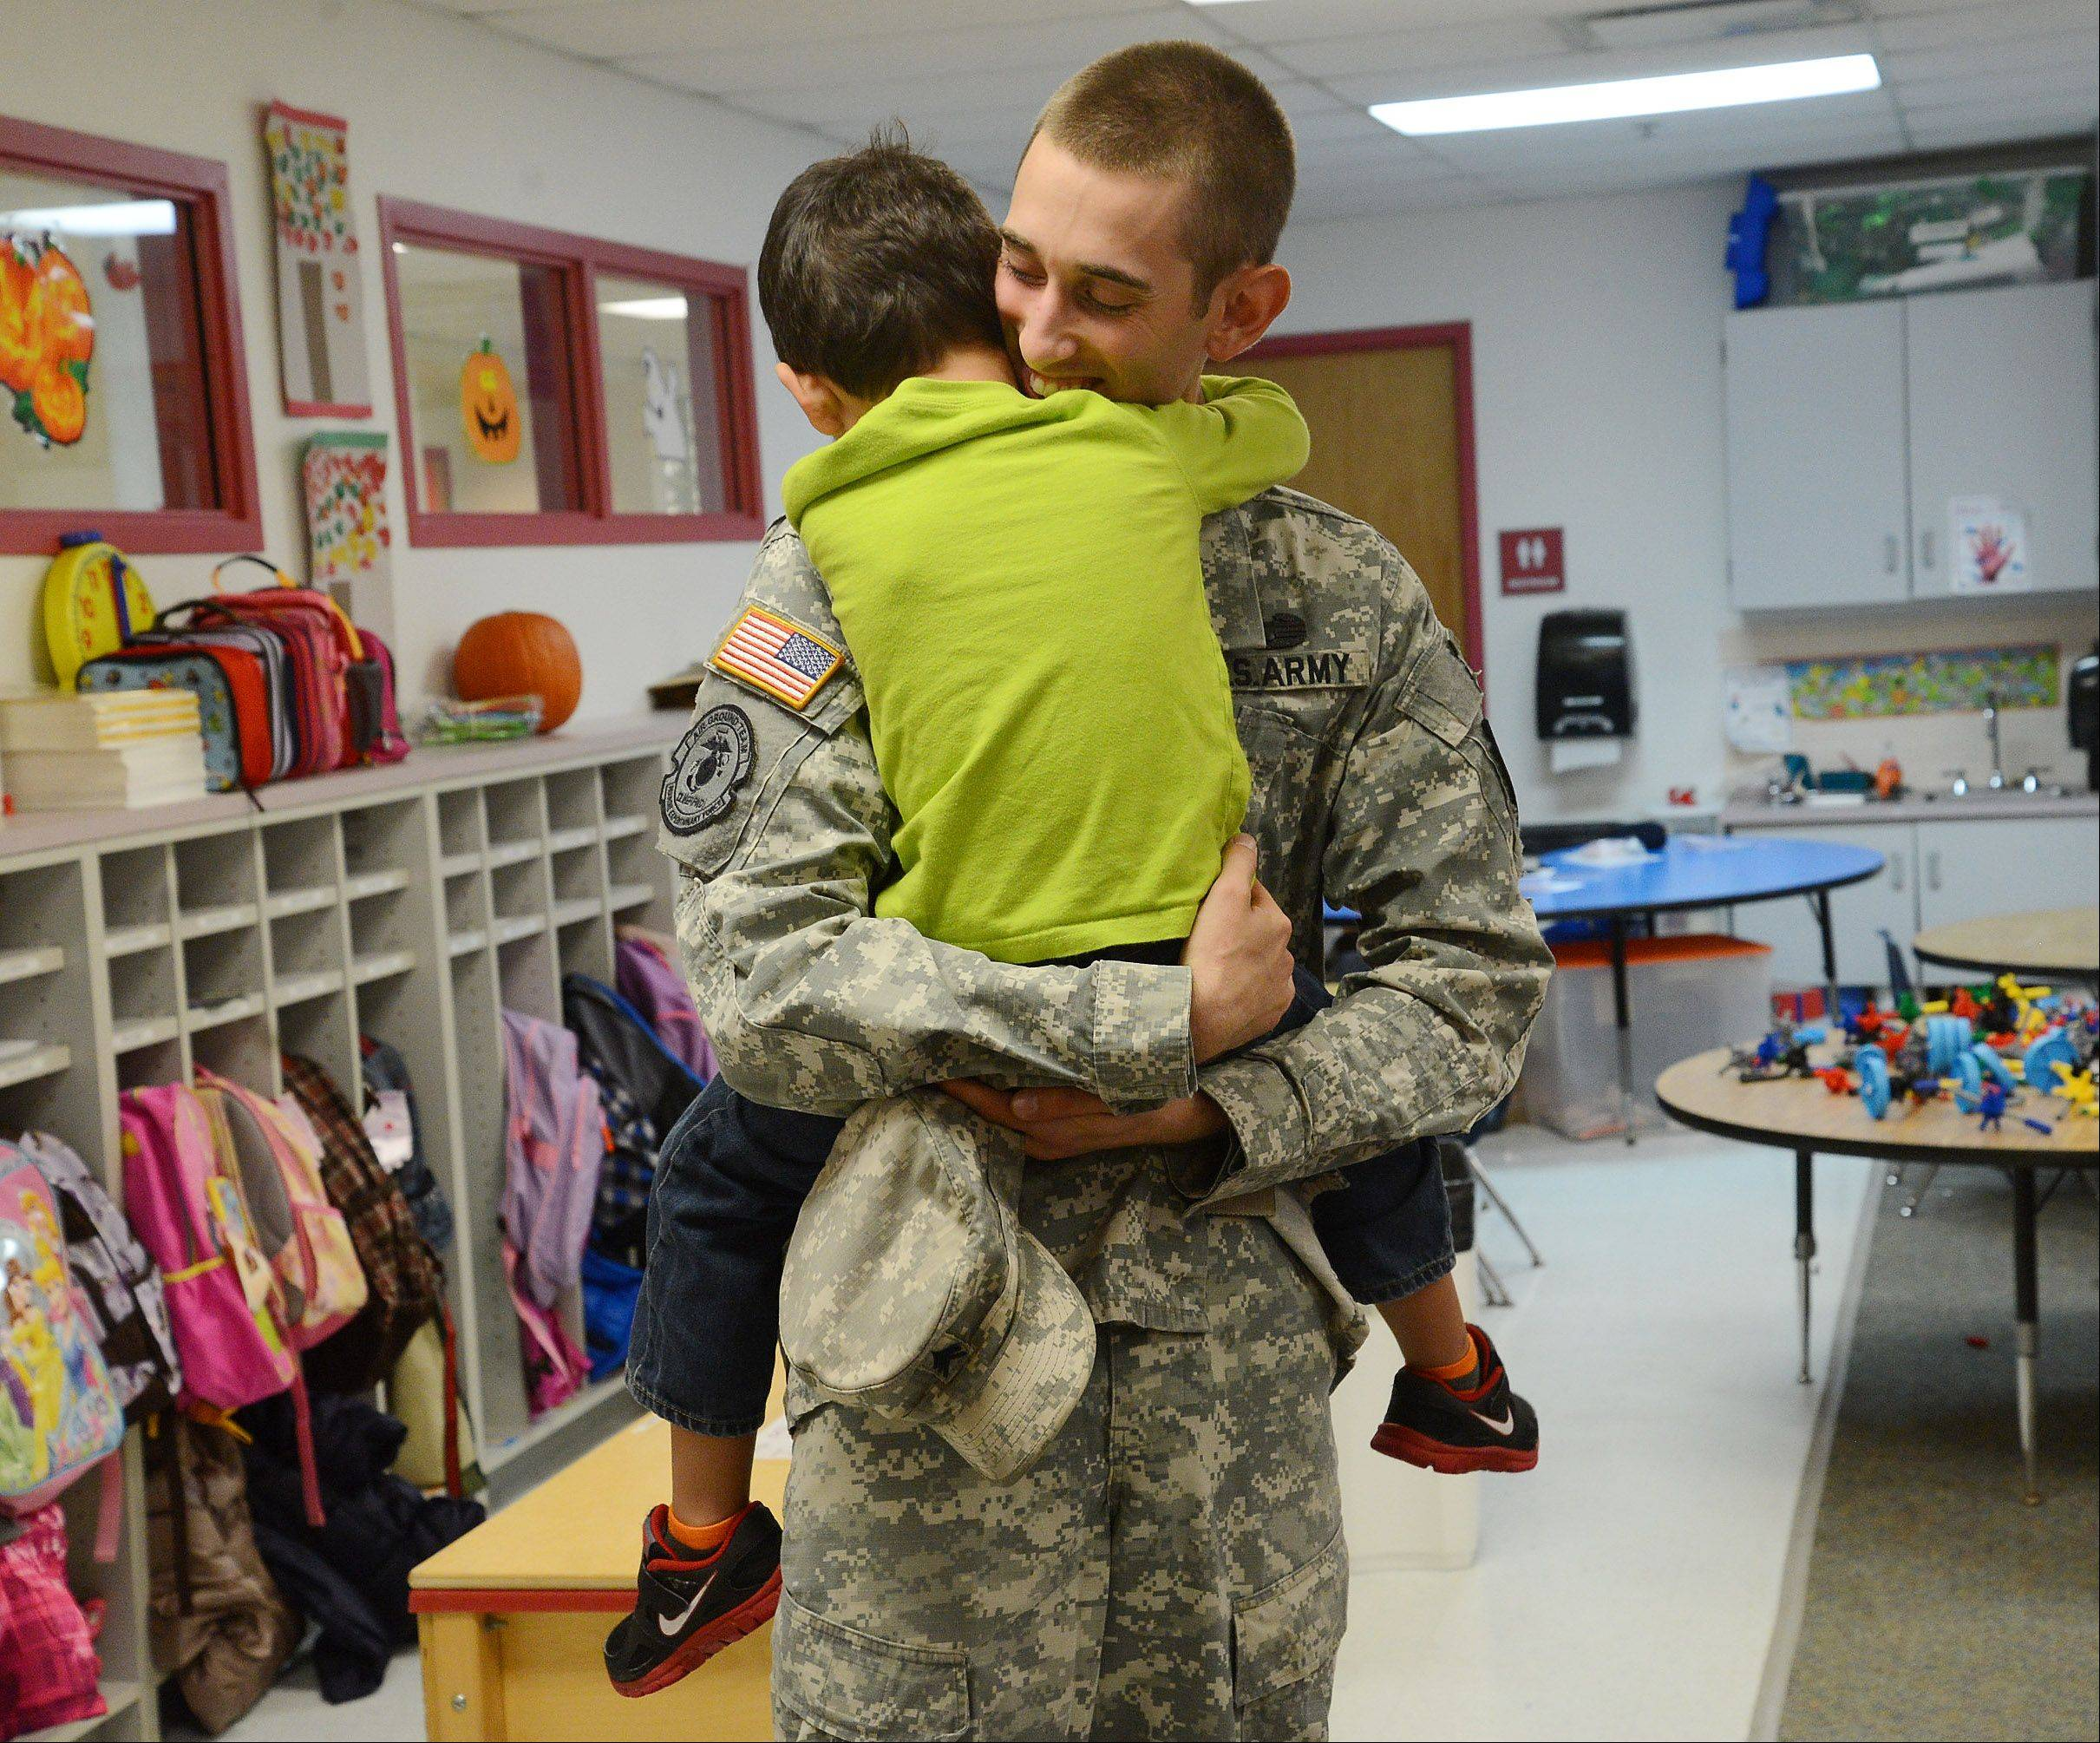 U.S. Army Sgt. Robert Schroeder of Lake Barrington gets a hug from his son, William, on Wednesday when visiting St. Anne Parish School in Barrington. Schroeder planned on surprising the 4-year-old in his pre-Kindergarten class, but instead got a surprise hero's welcome from the school's students and staff.